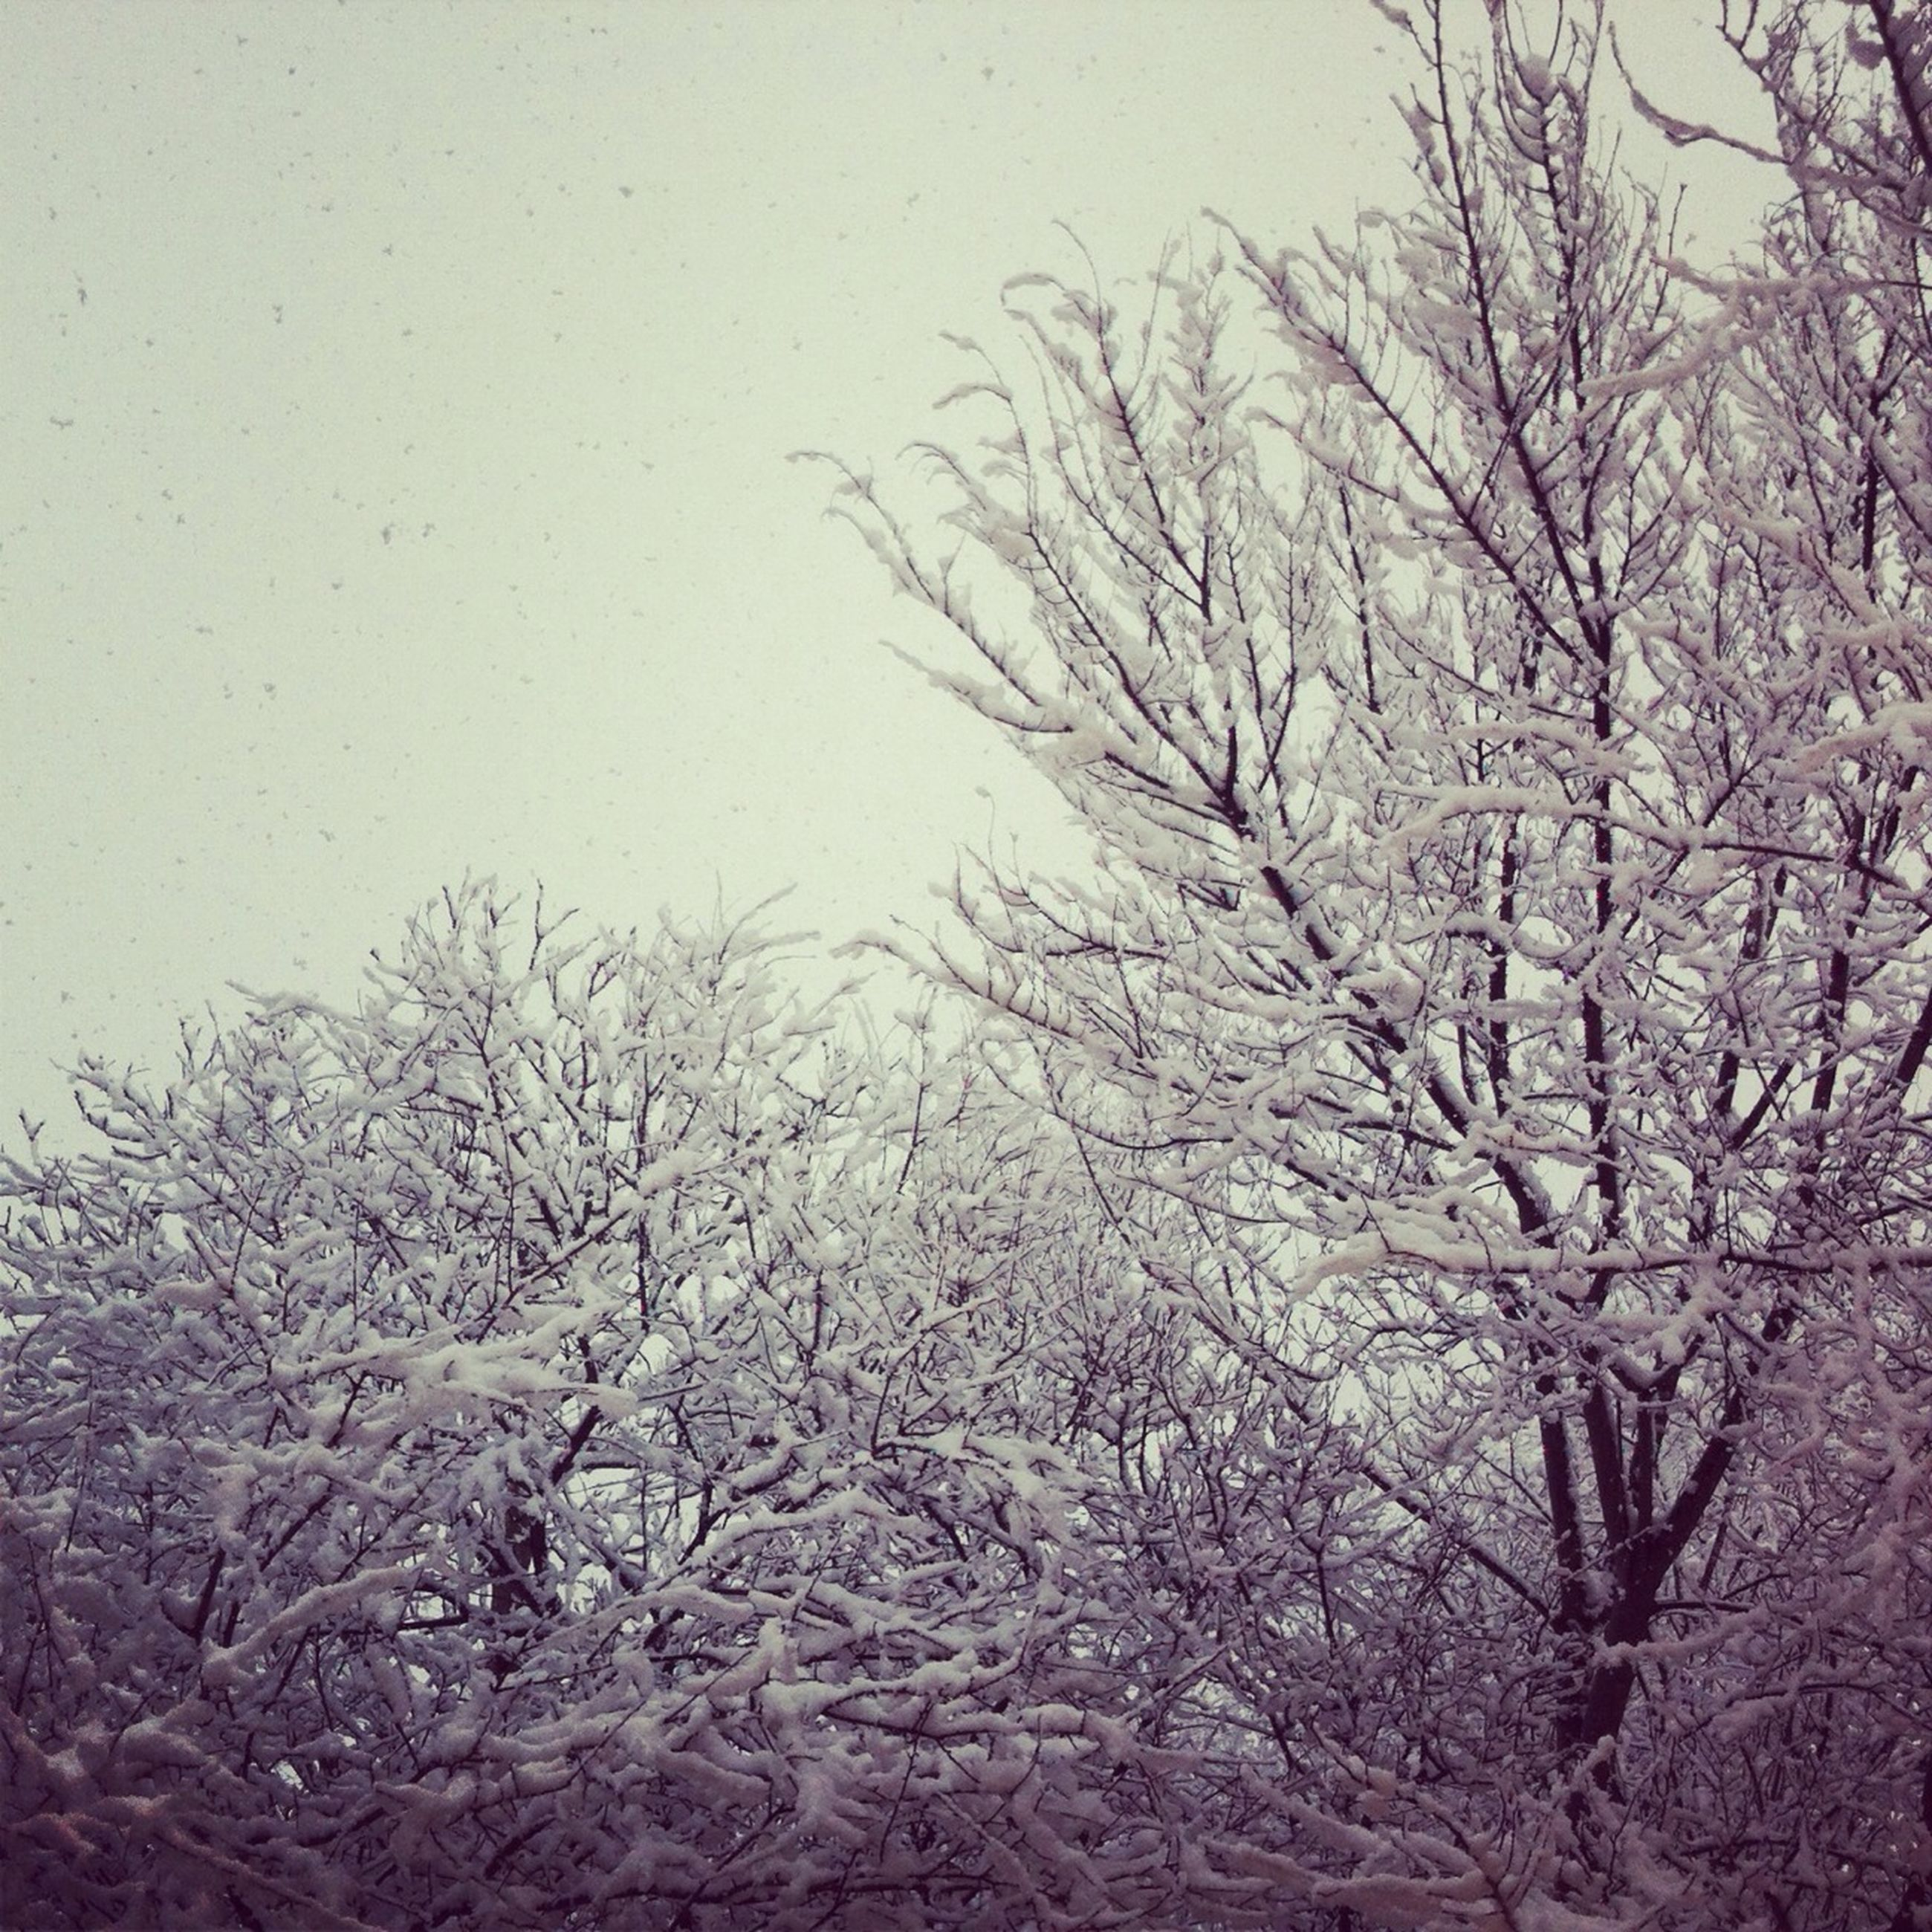 bare tree, tree, branch, winter, cold temperature, weather, tranquility, snow, nature, season, clear sky, day, tranquil scene, no people, outdoors, beauty in nature, scenics, covering, sky